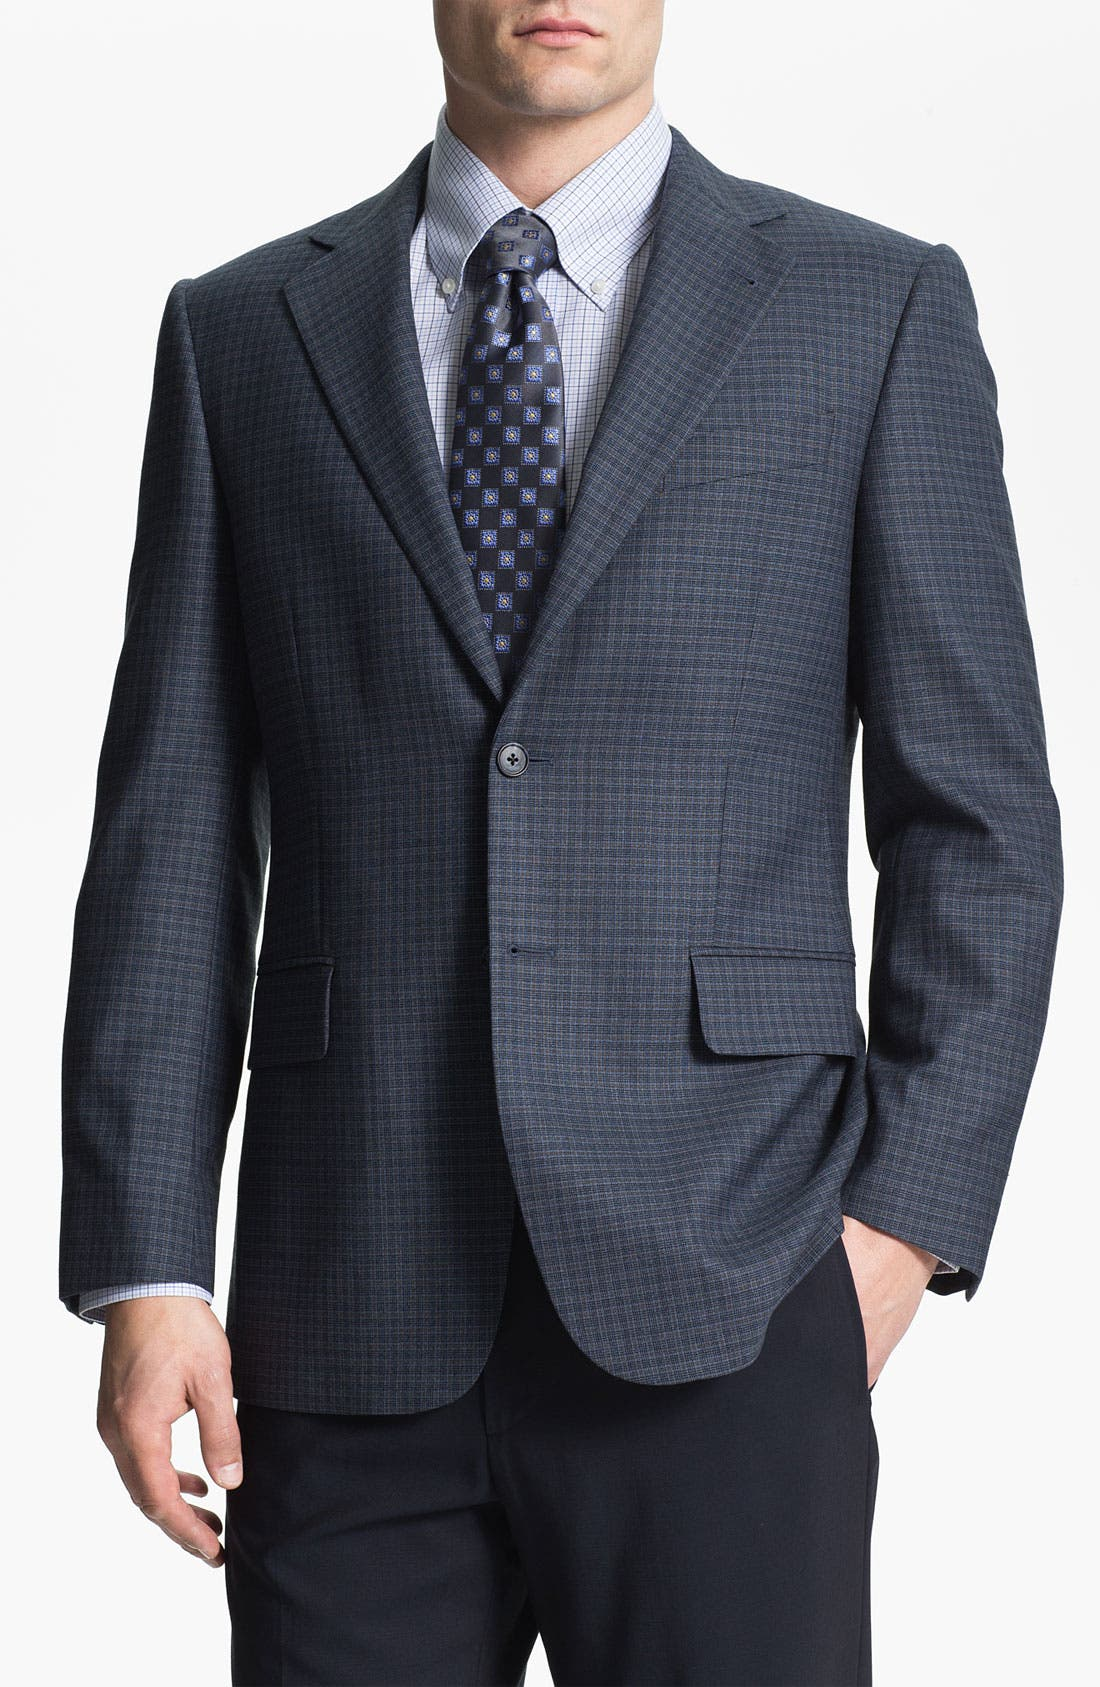 Main Image - Joseph Abboud Check Sportcoat